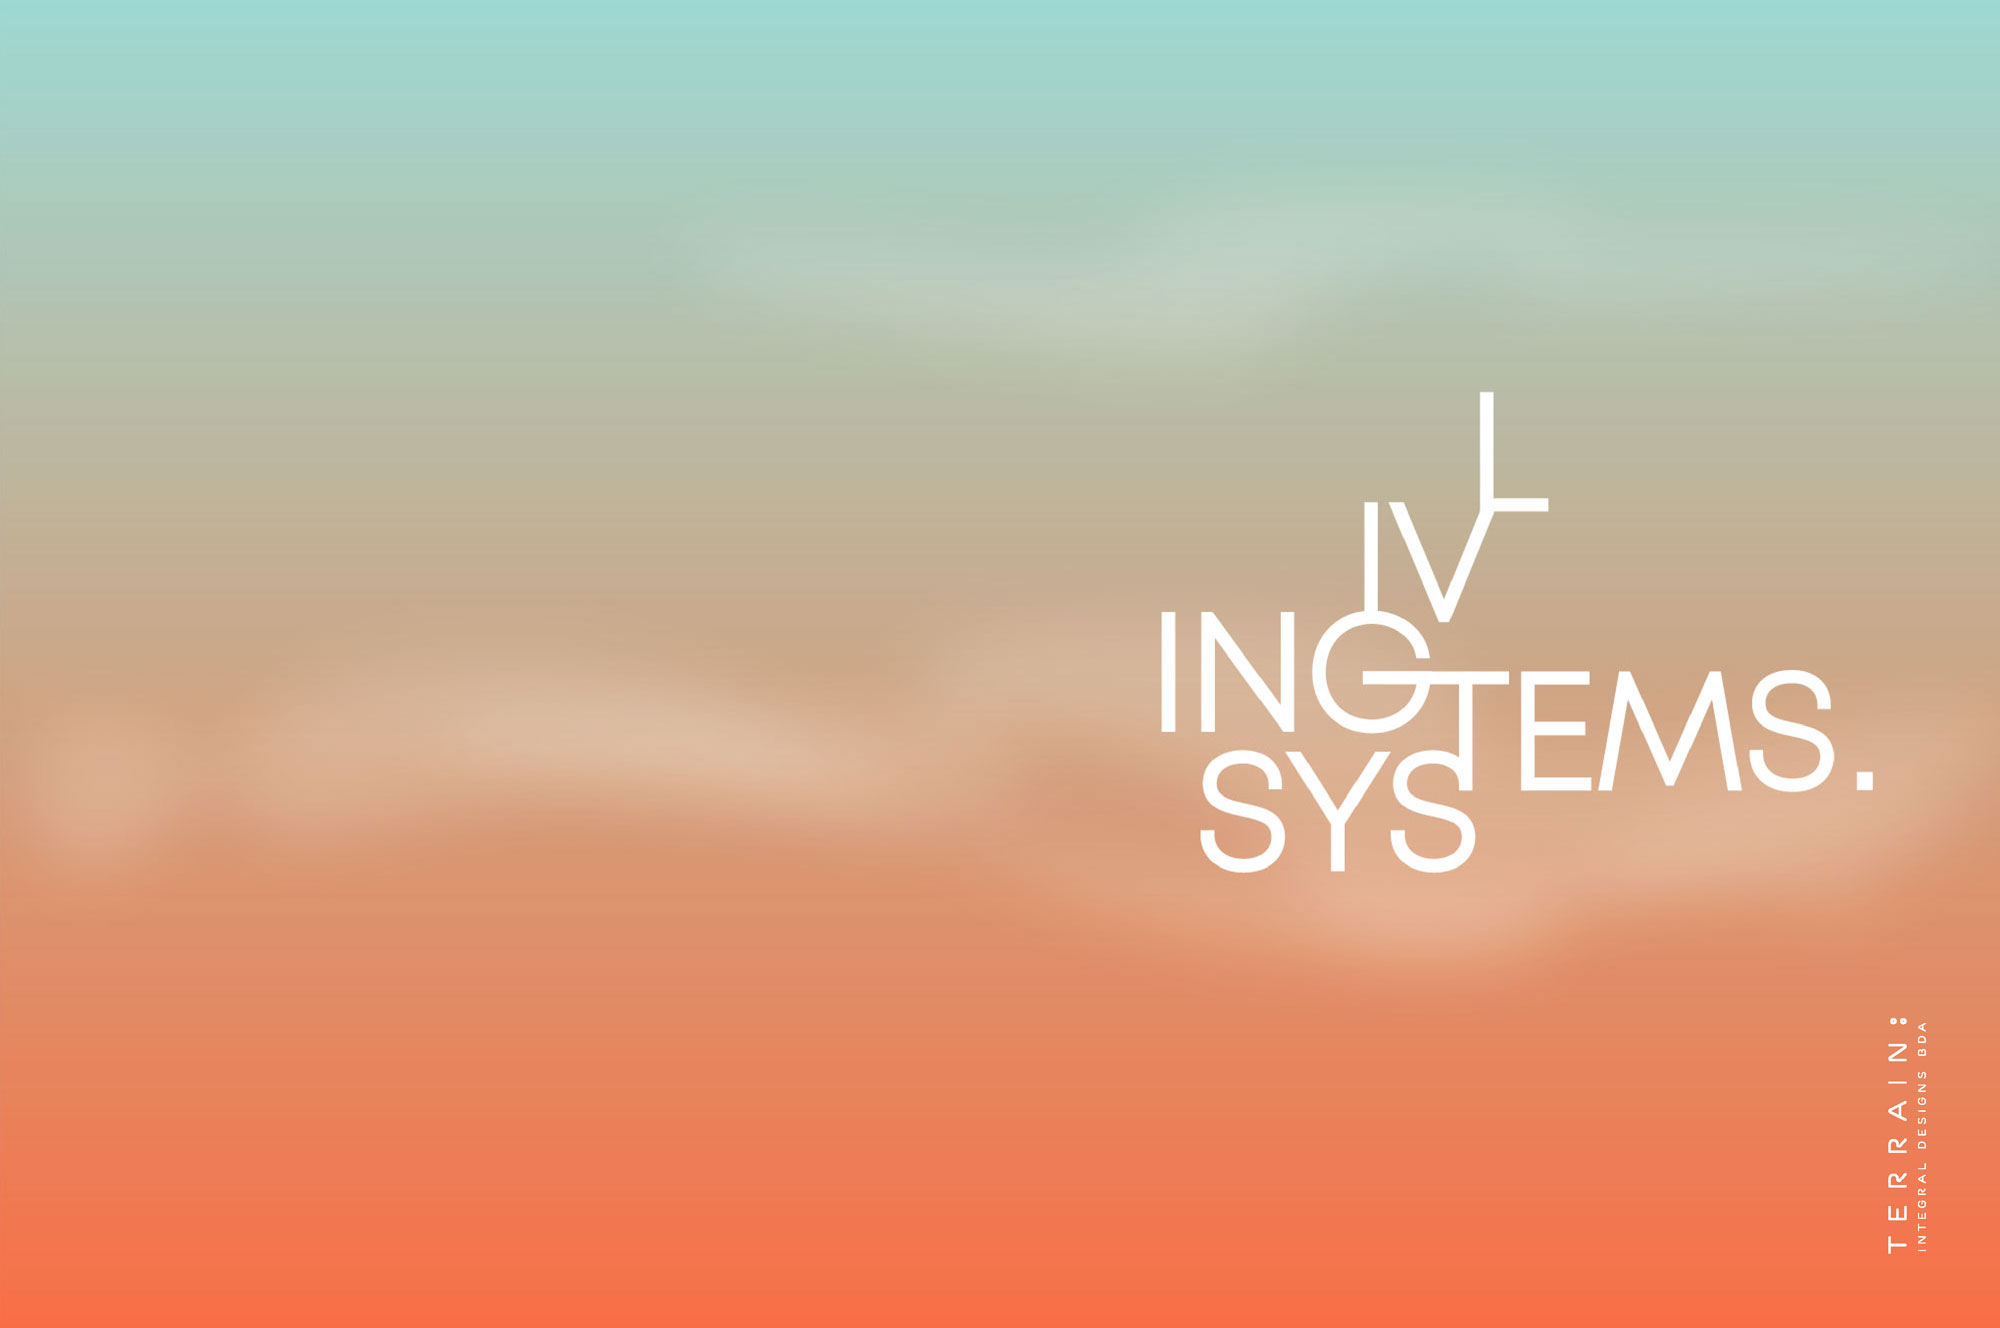 LIVING-SYSTEMS-2